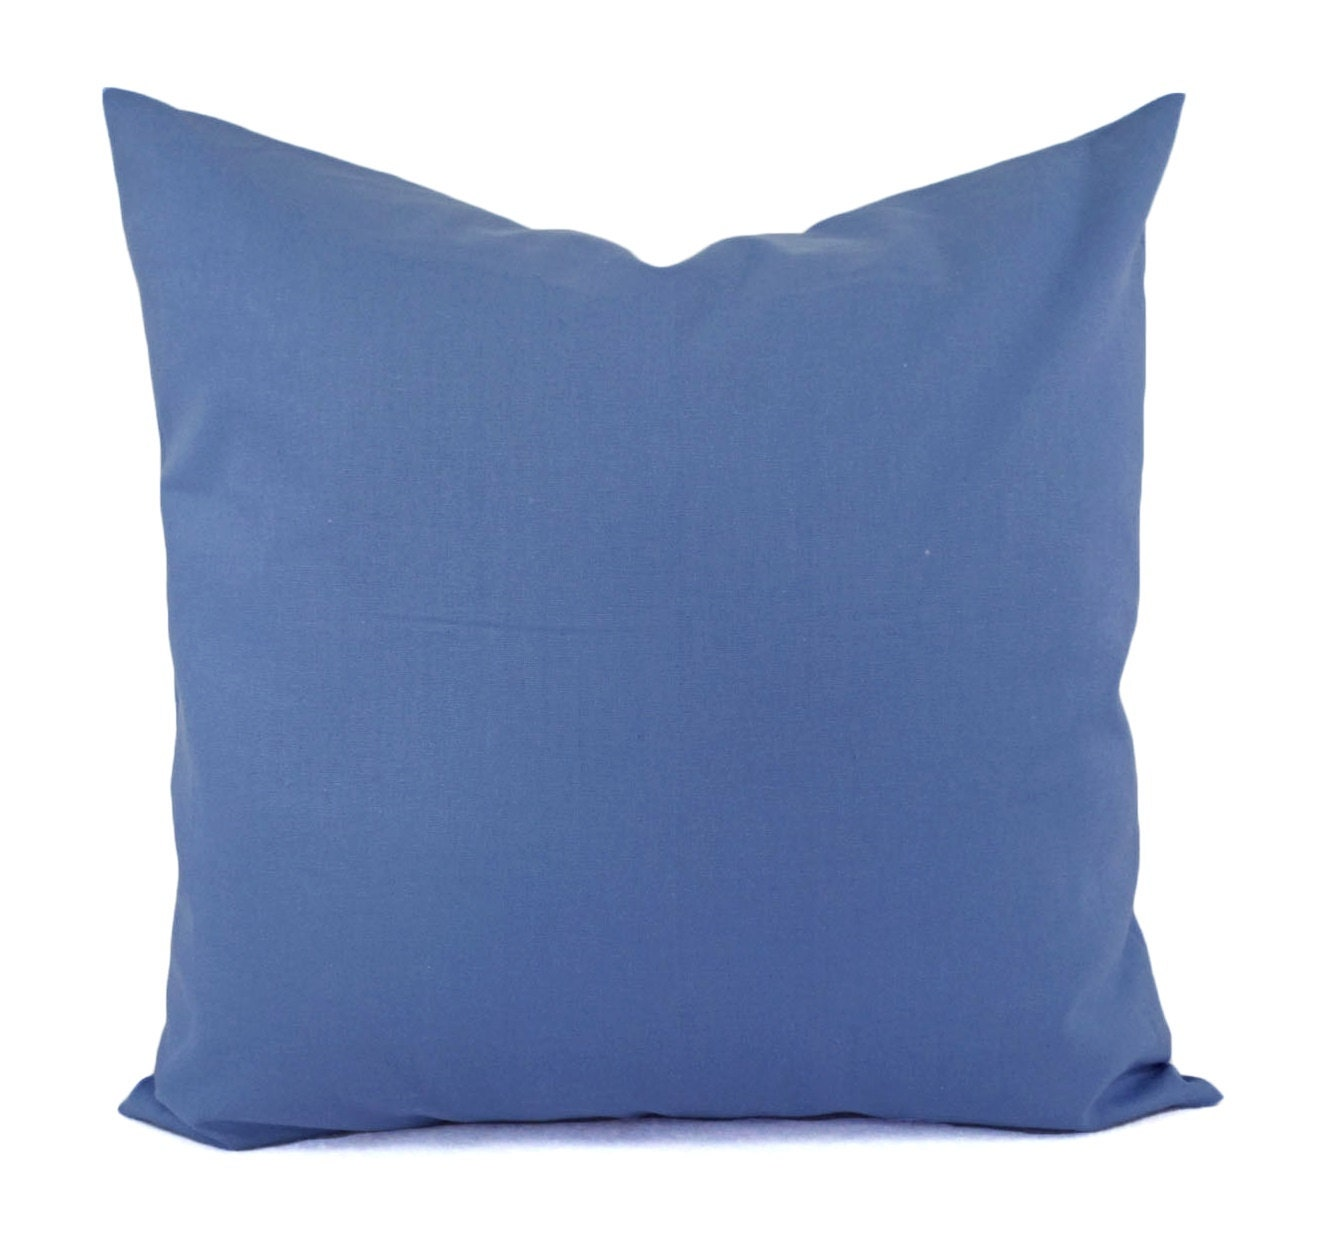 Solid Medium Blue Decorative Pillow Cover Blue Pillow Cover